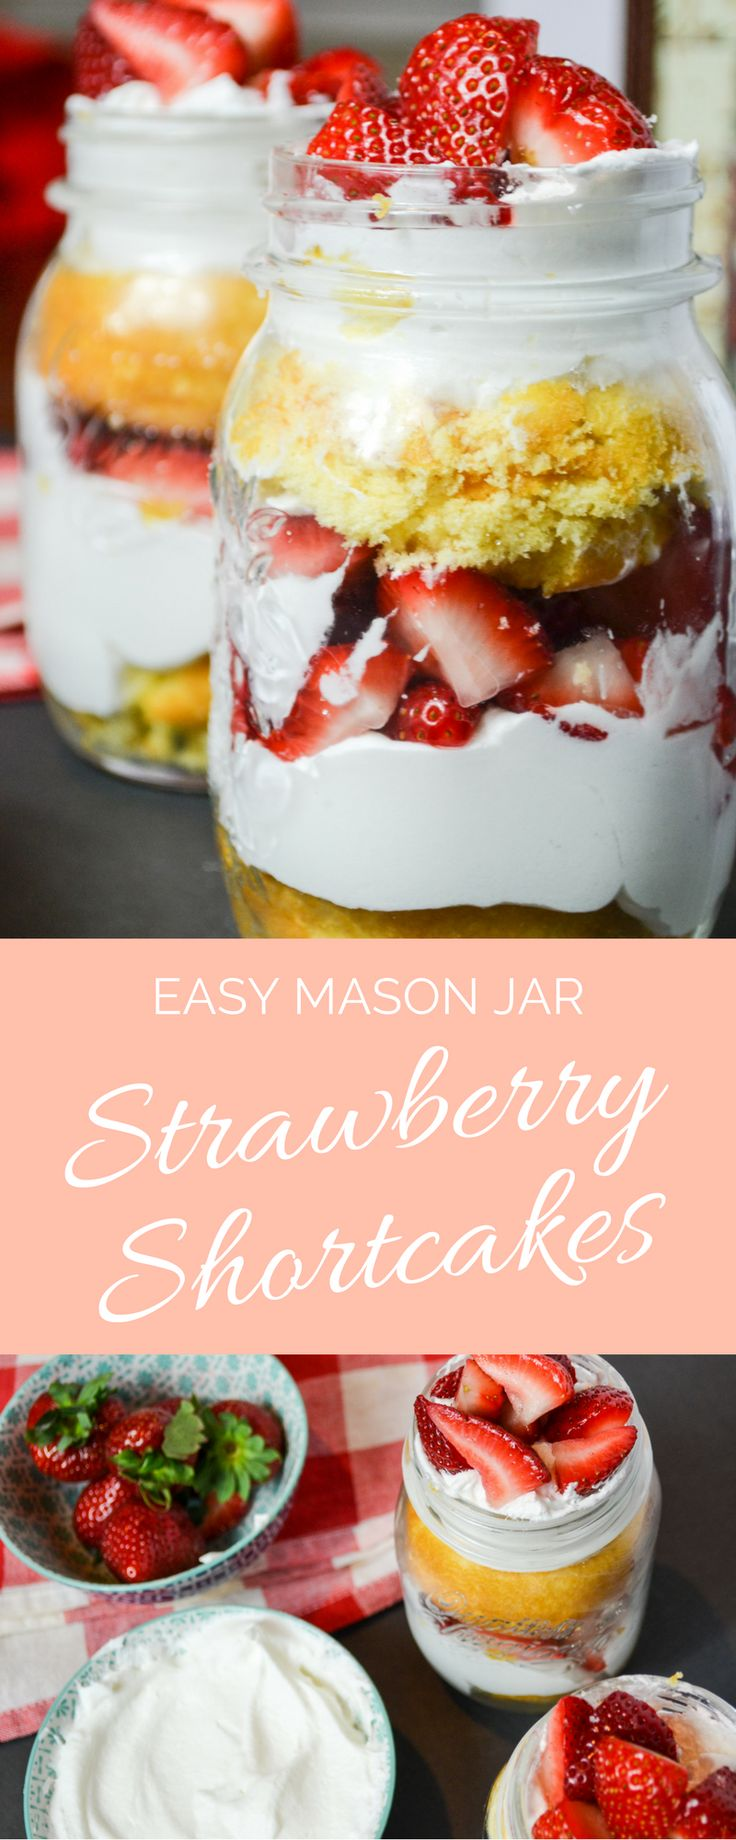 Perfect for the 4th of July! These easy mason jar strawberry shortcakes are so easy and delicious